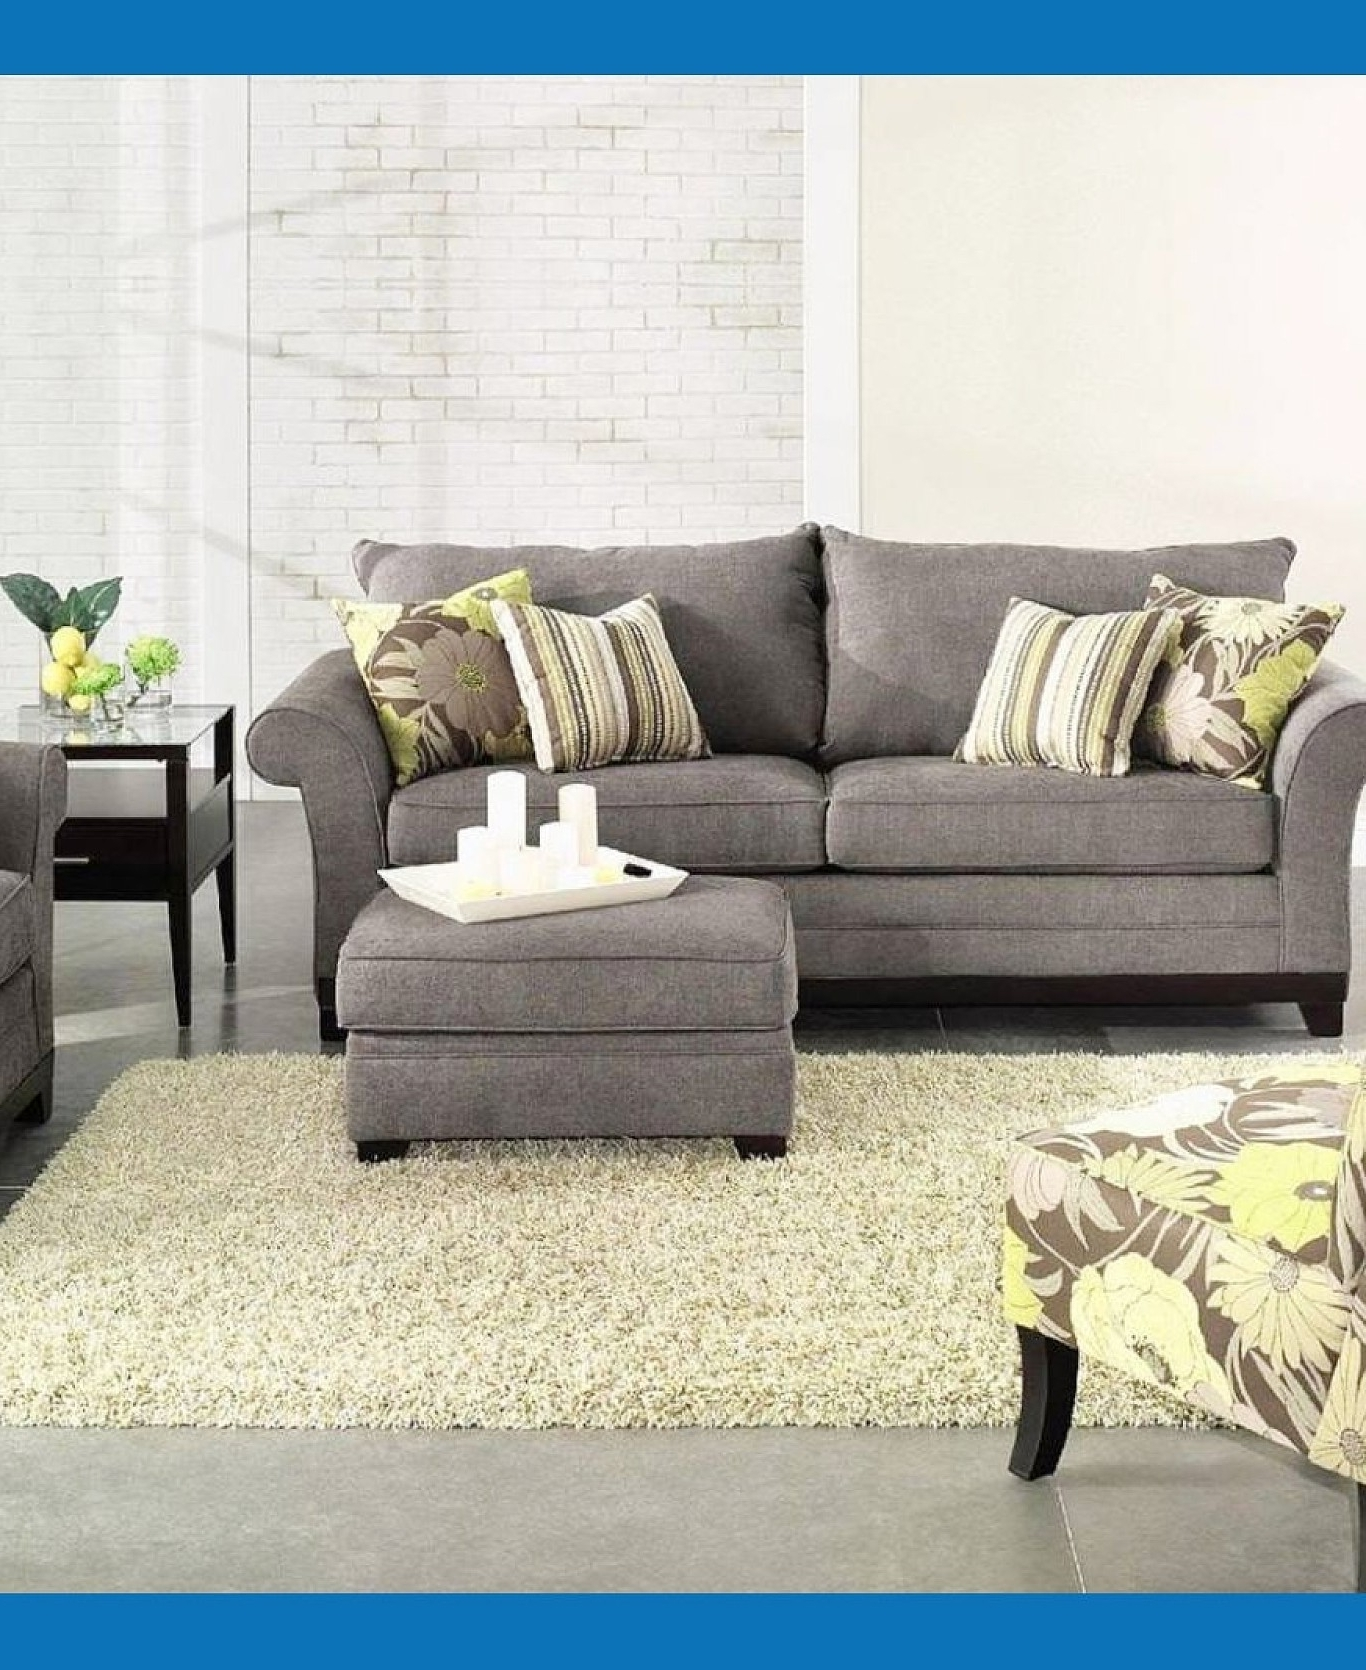 Famous Vino Reclining Sofa Badcock Hamilton Badcock Amarillo Trifecta In Farmers Furniture Sectional Sofas (View 4 of 20)